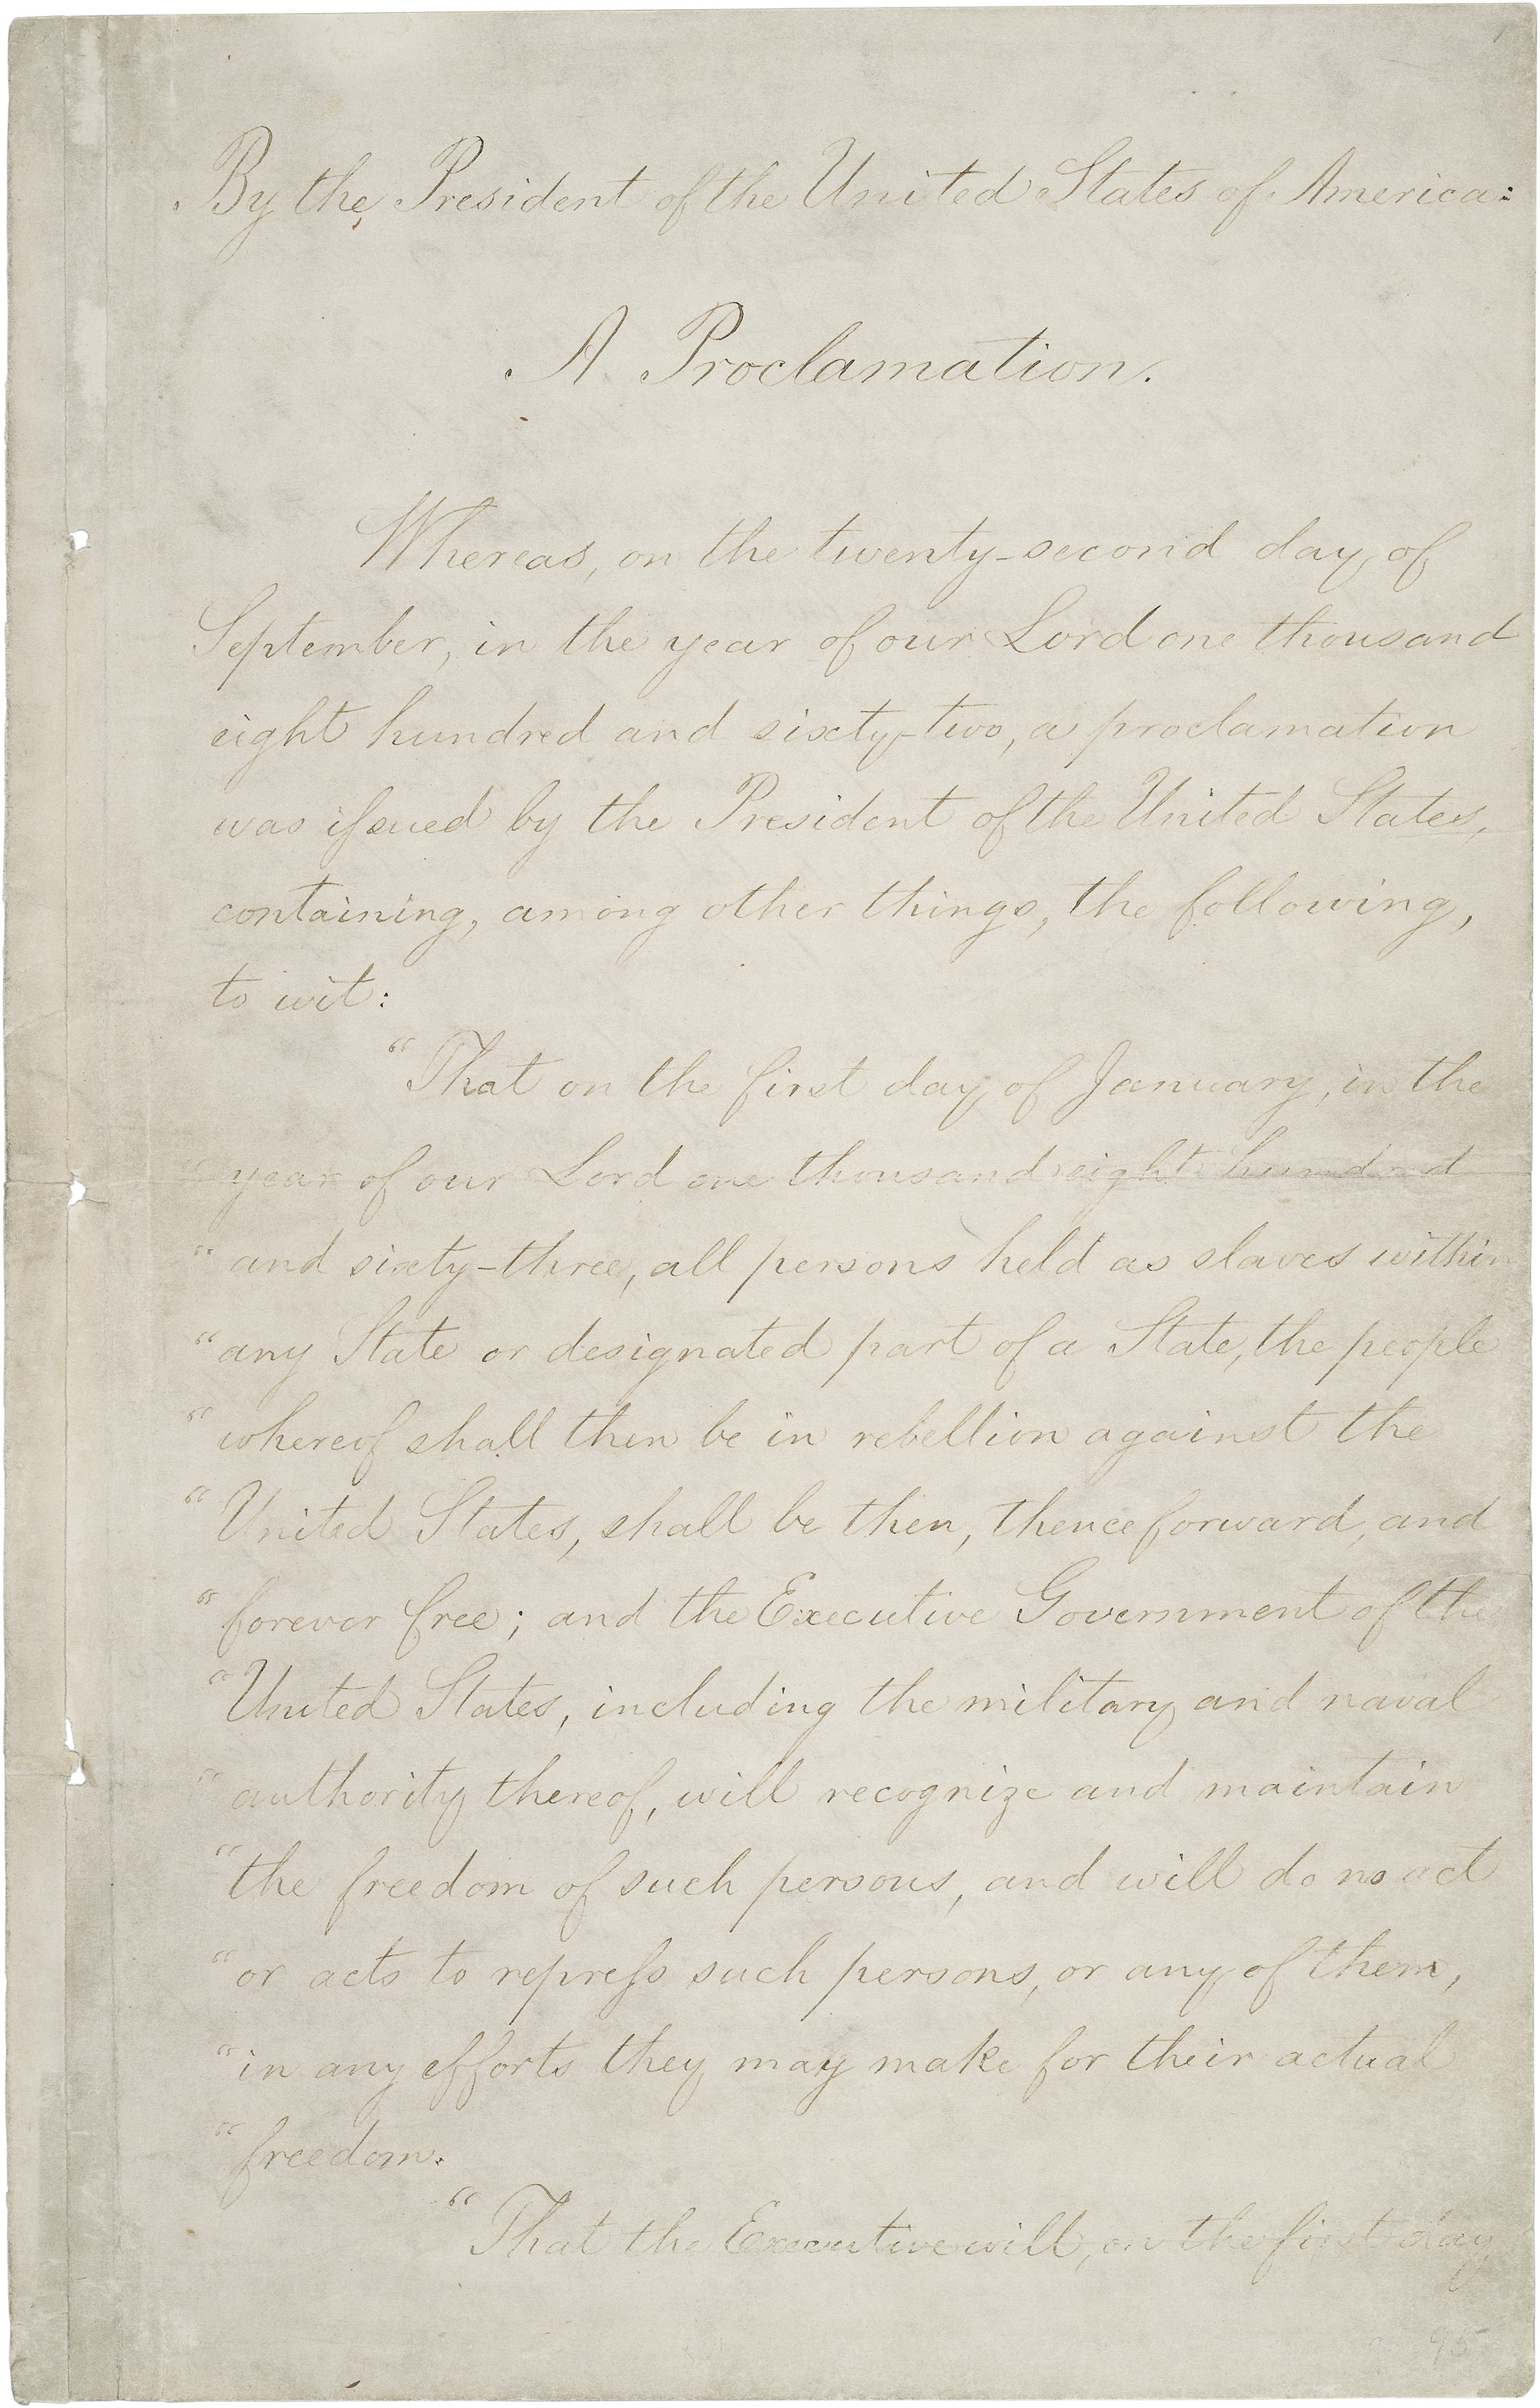 Abraham Lincoln's Emancipation Proclamation, A document which fundamentally changed the war and the Nation